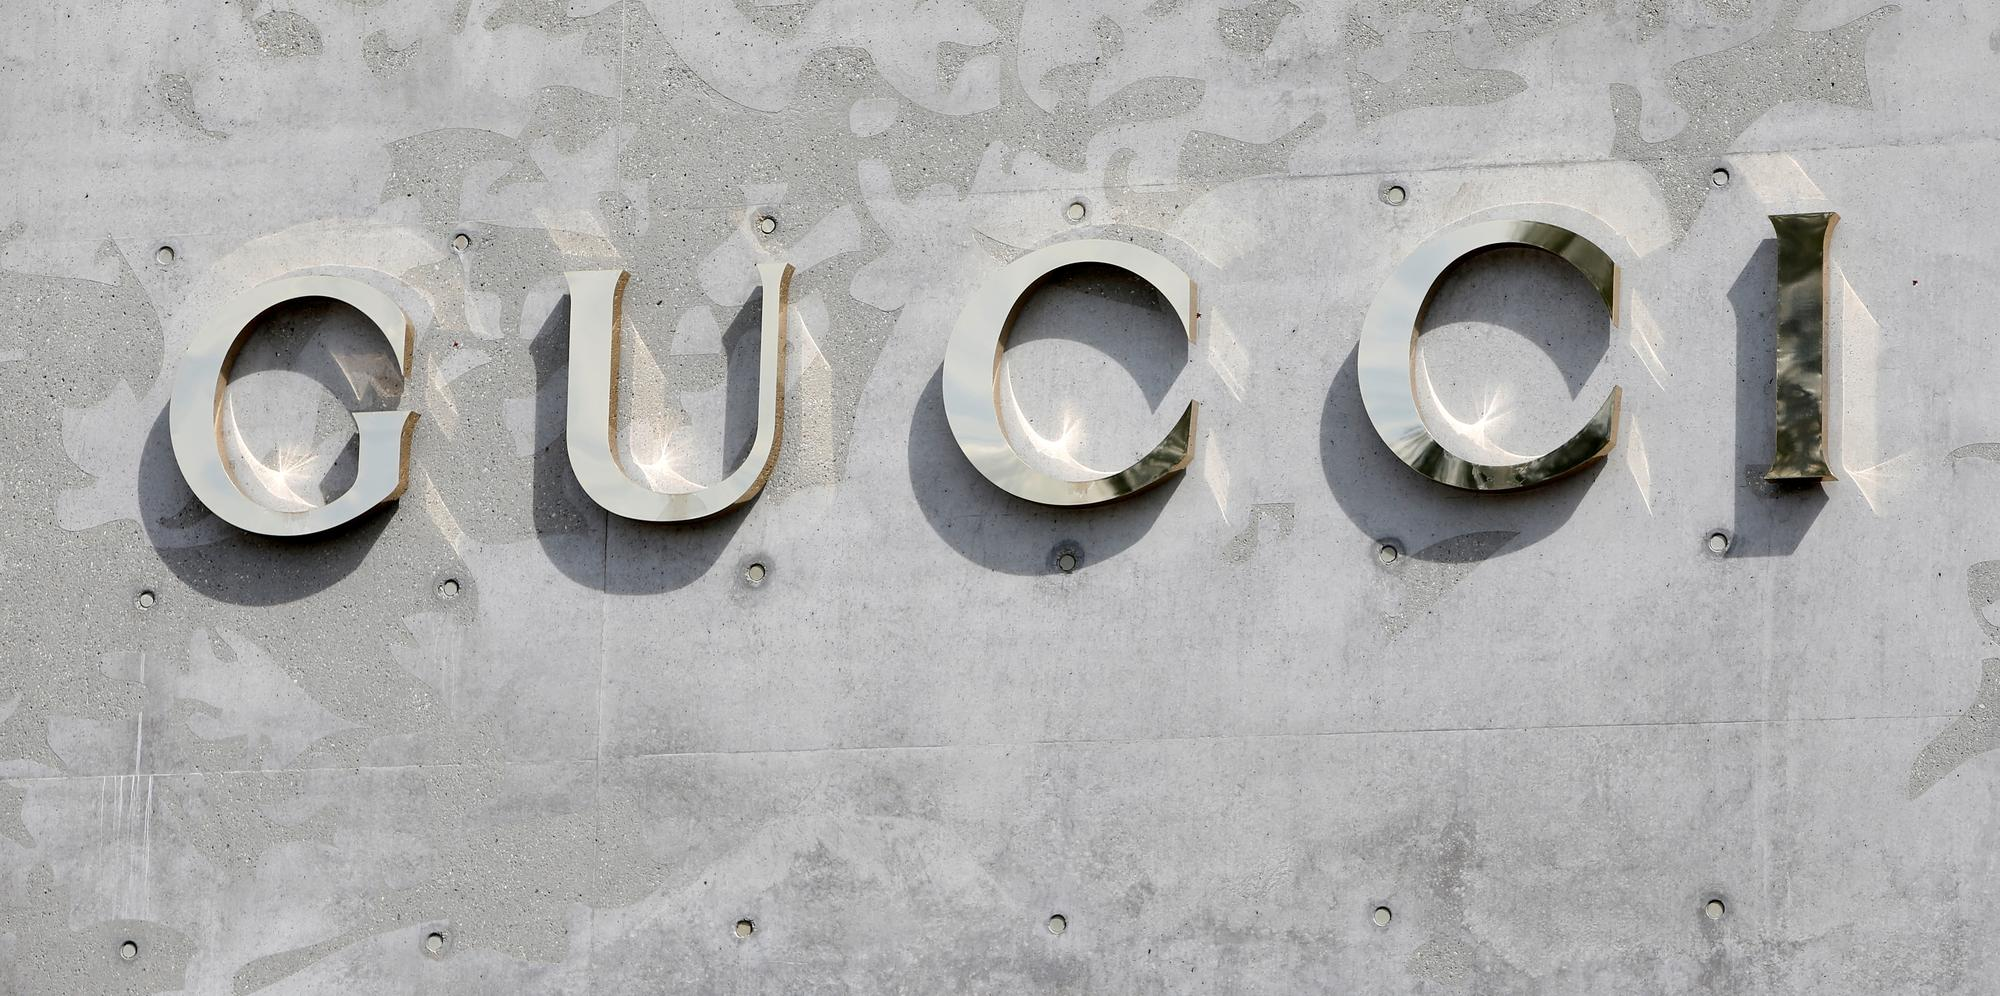 Gucci posts solid growth despite Hong Kong turmoil